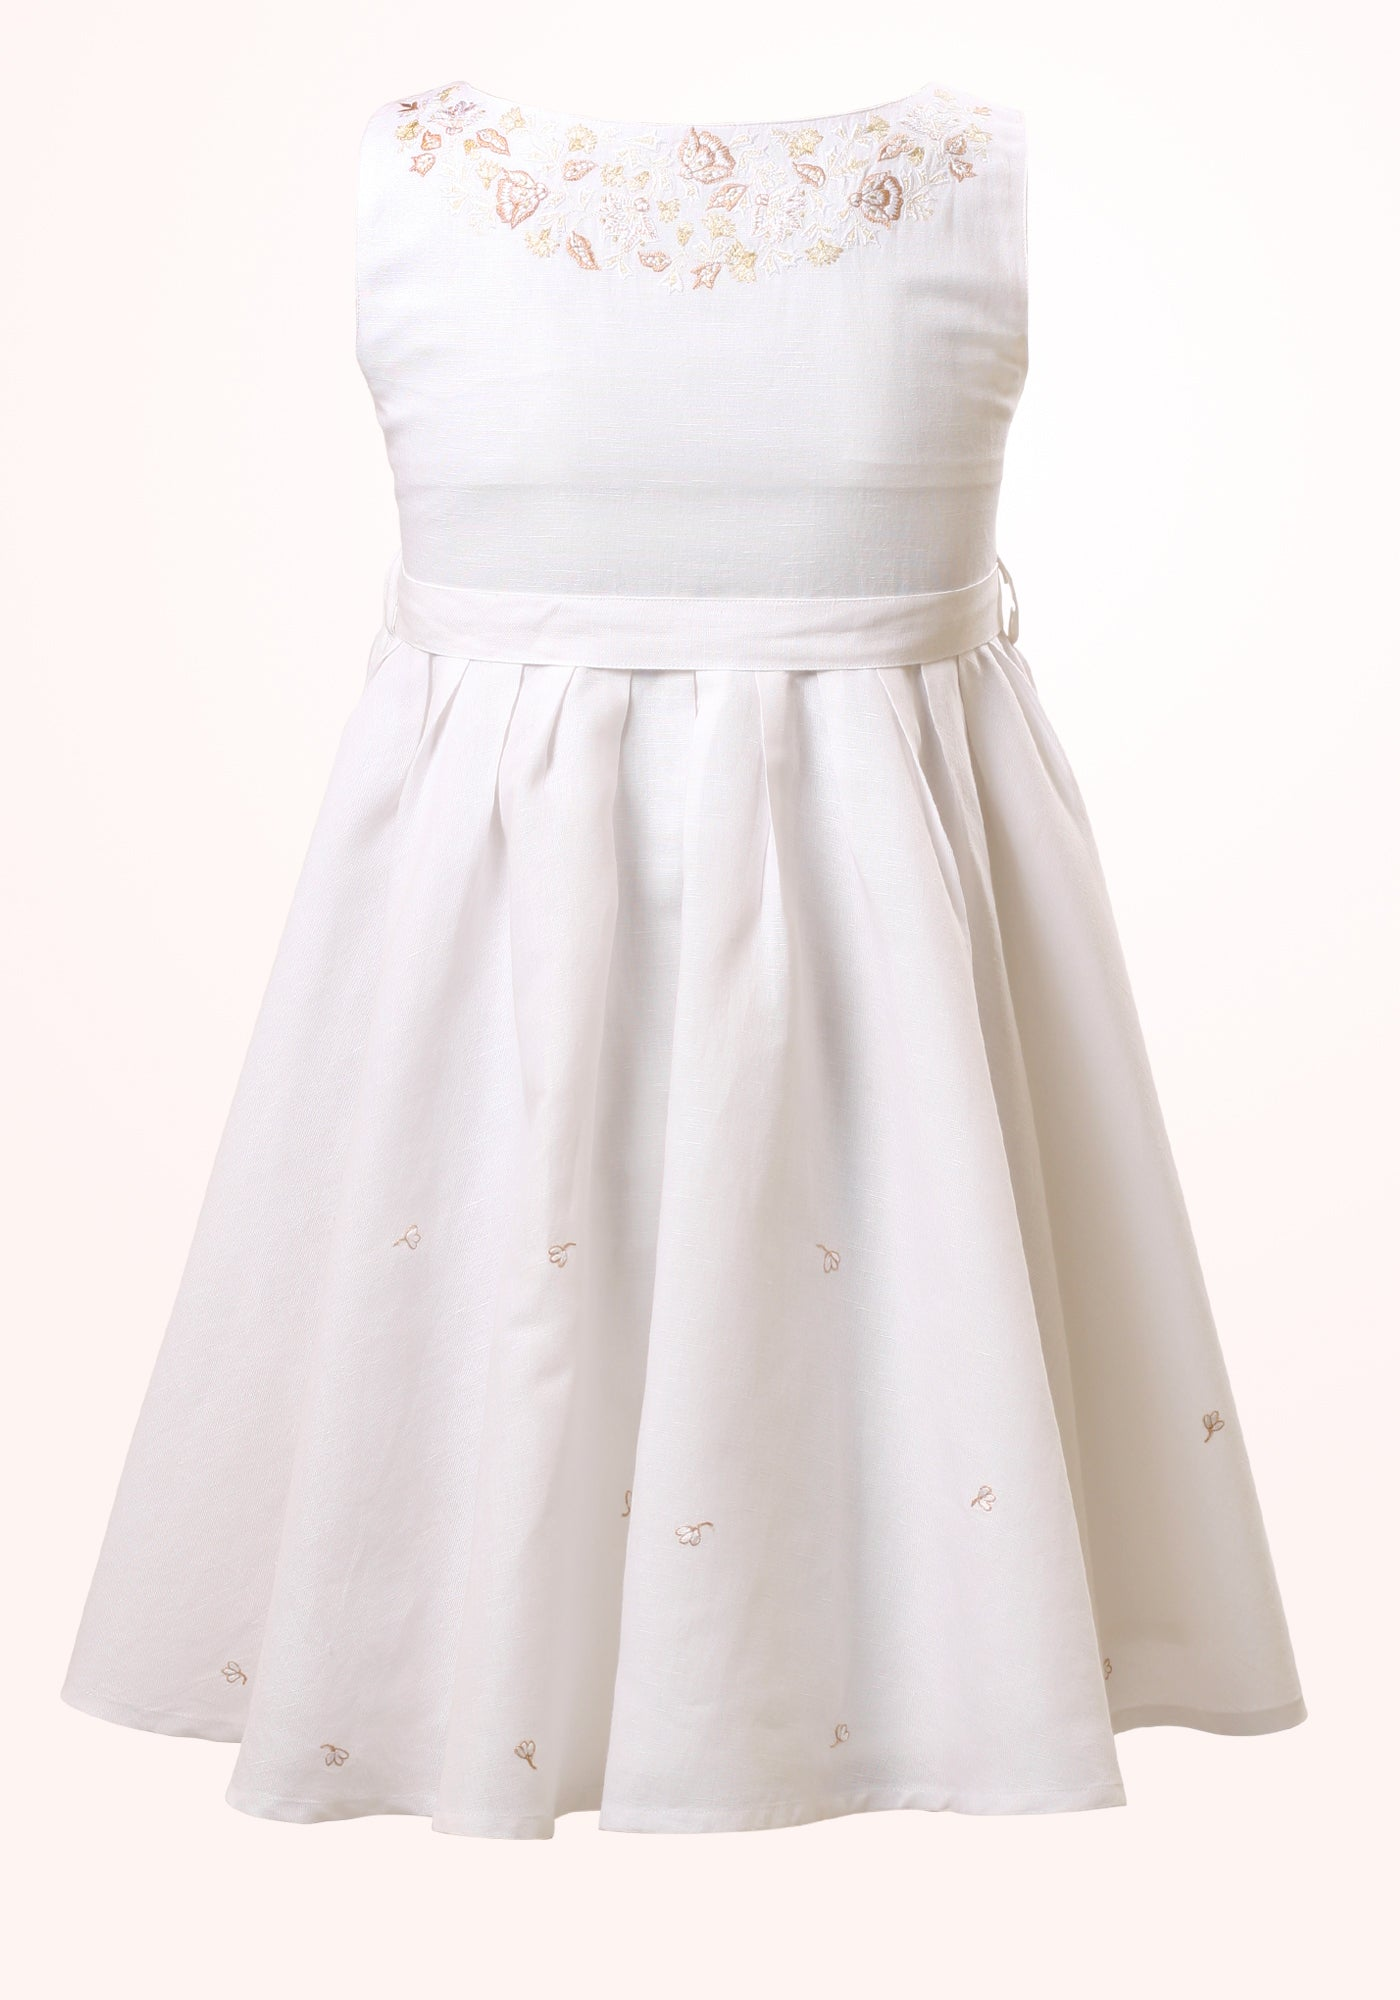 Magnolia Girls Short Dress in White Embroidered Linen - MINC ecofashion